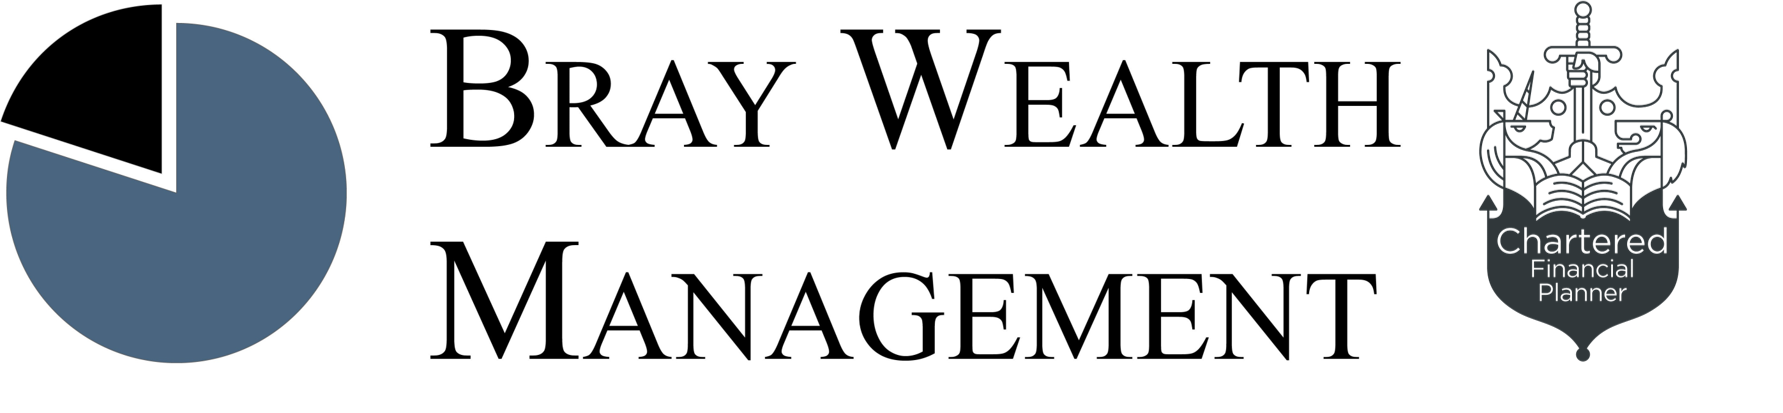 Bray Wealth Management Logo